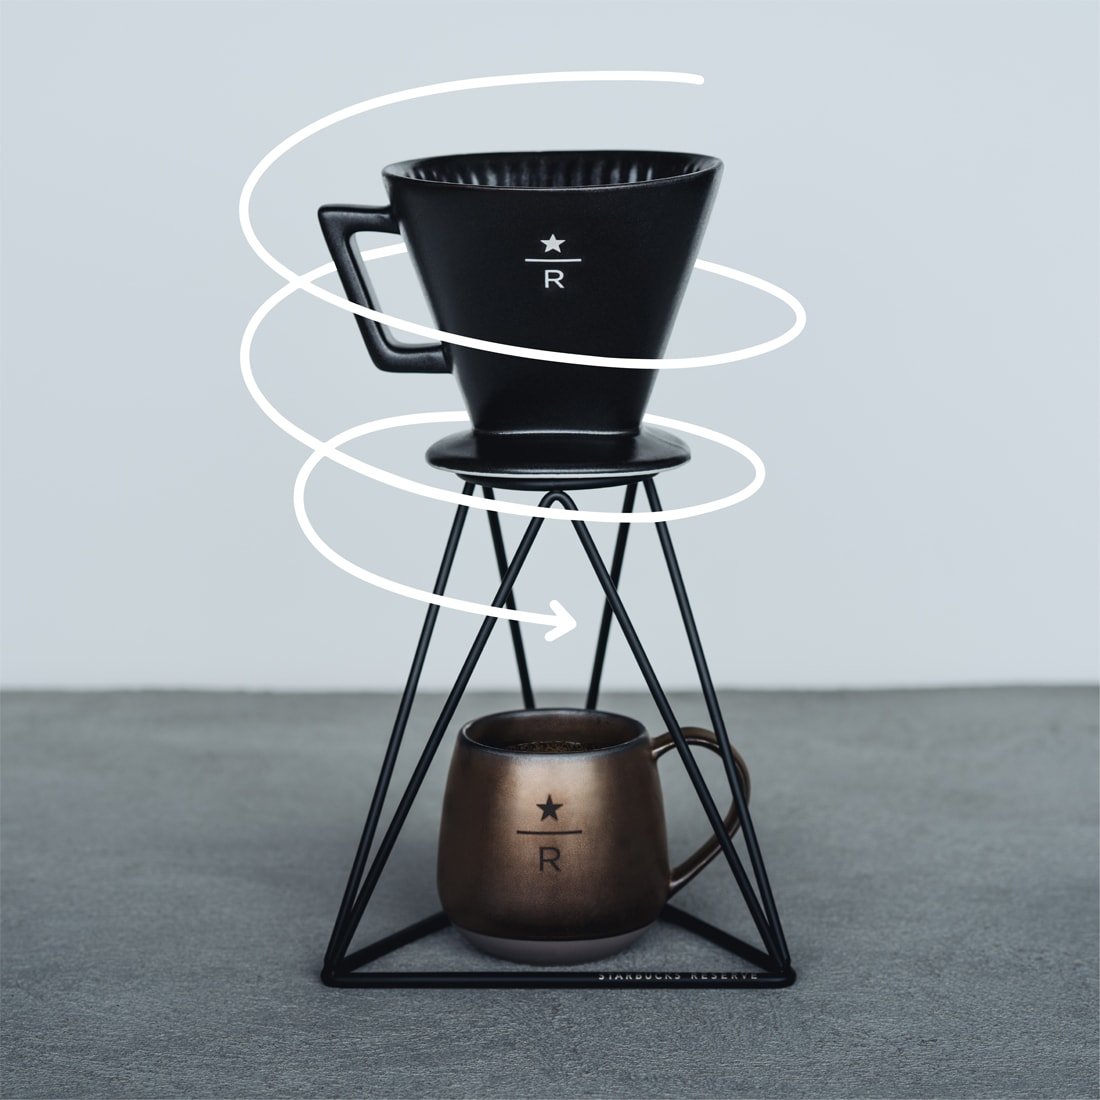 Pour-over brewer with overlaid line illustration of a spiral arrow around the pour-over